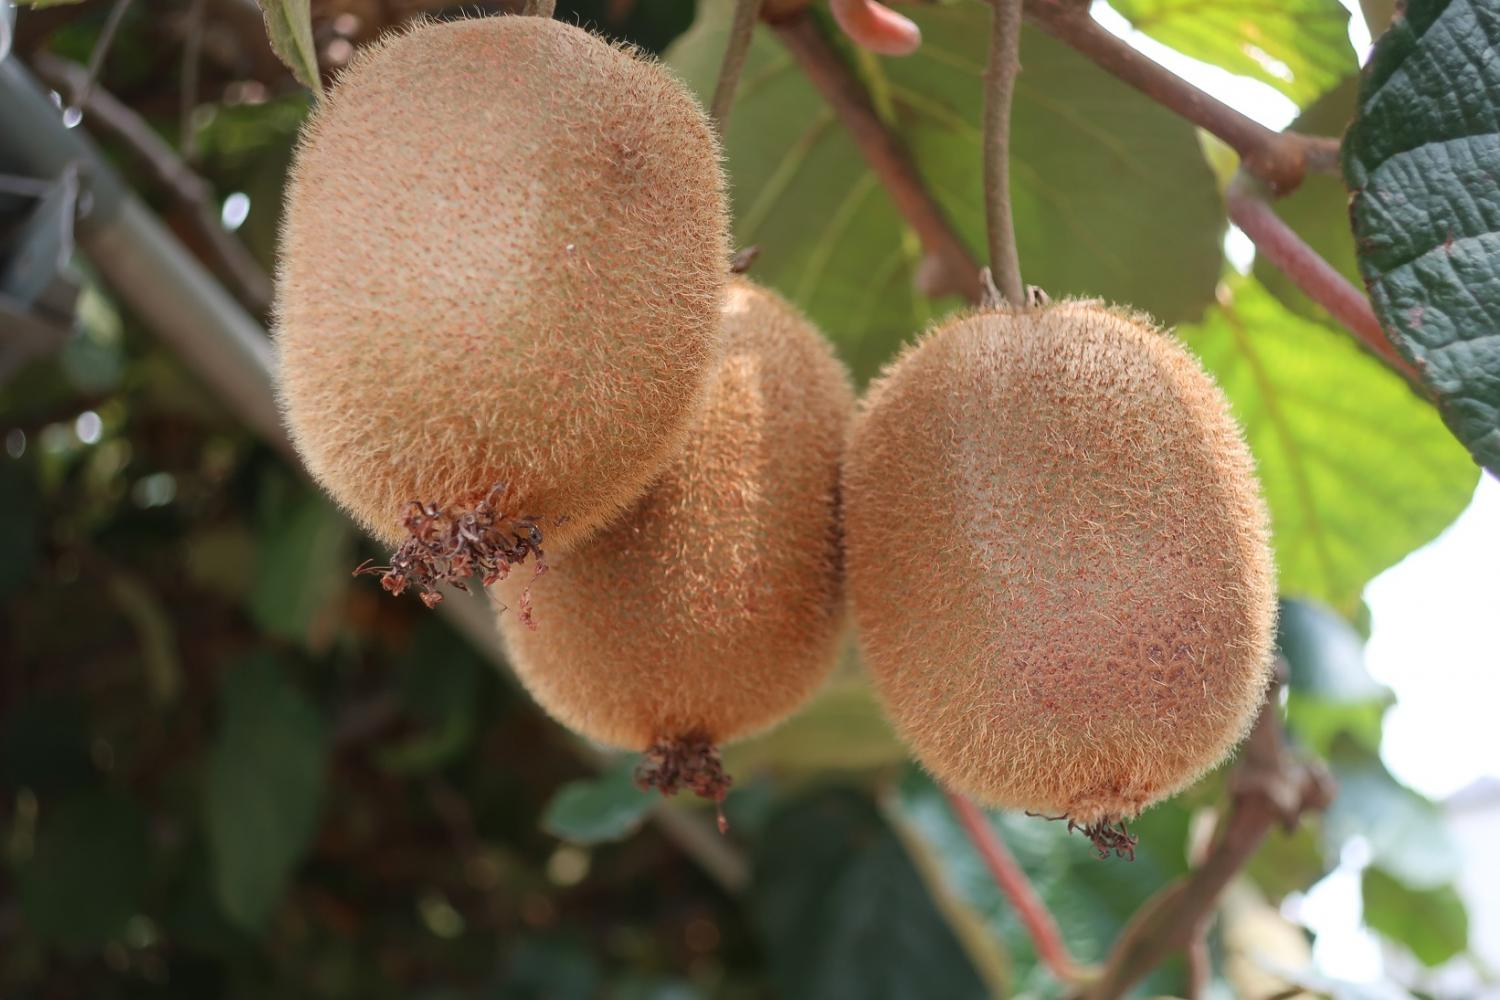 The kiwi fruit degree of ripeness is improving